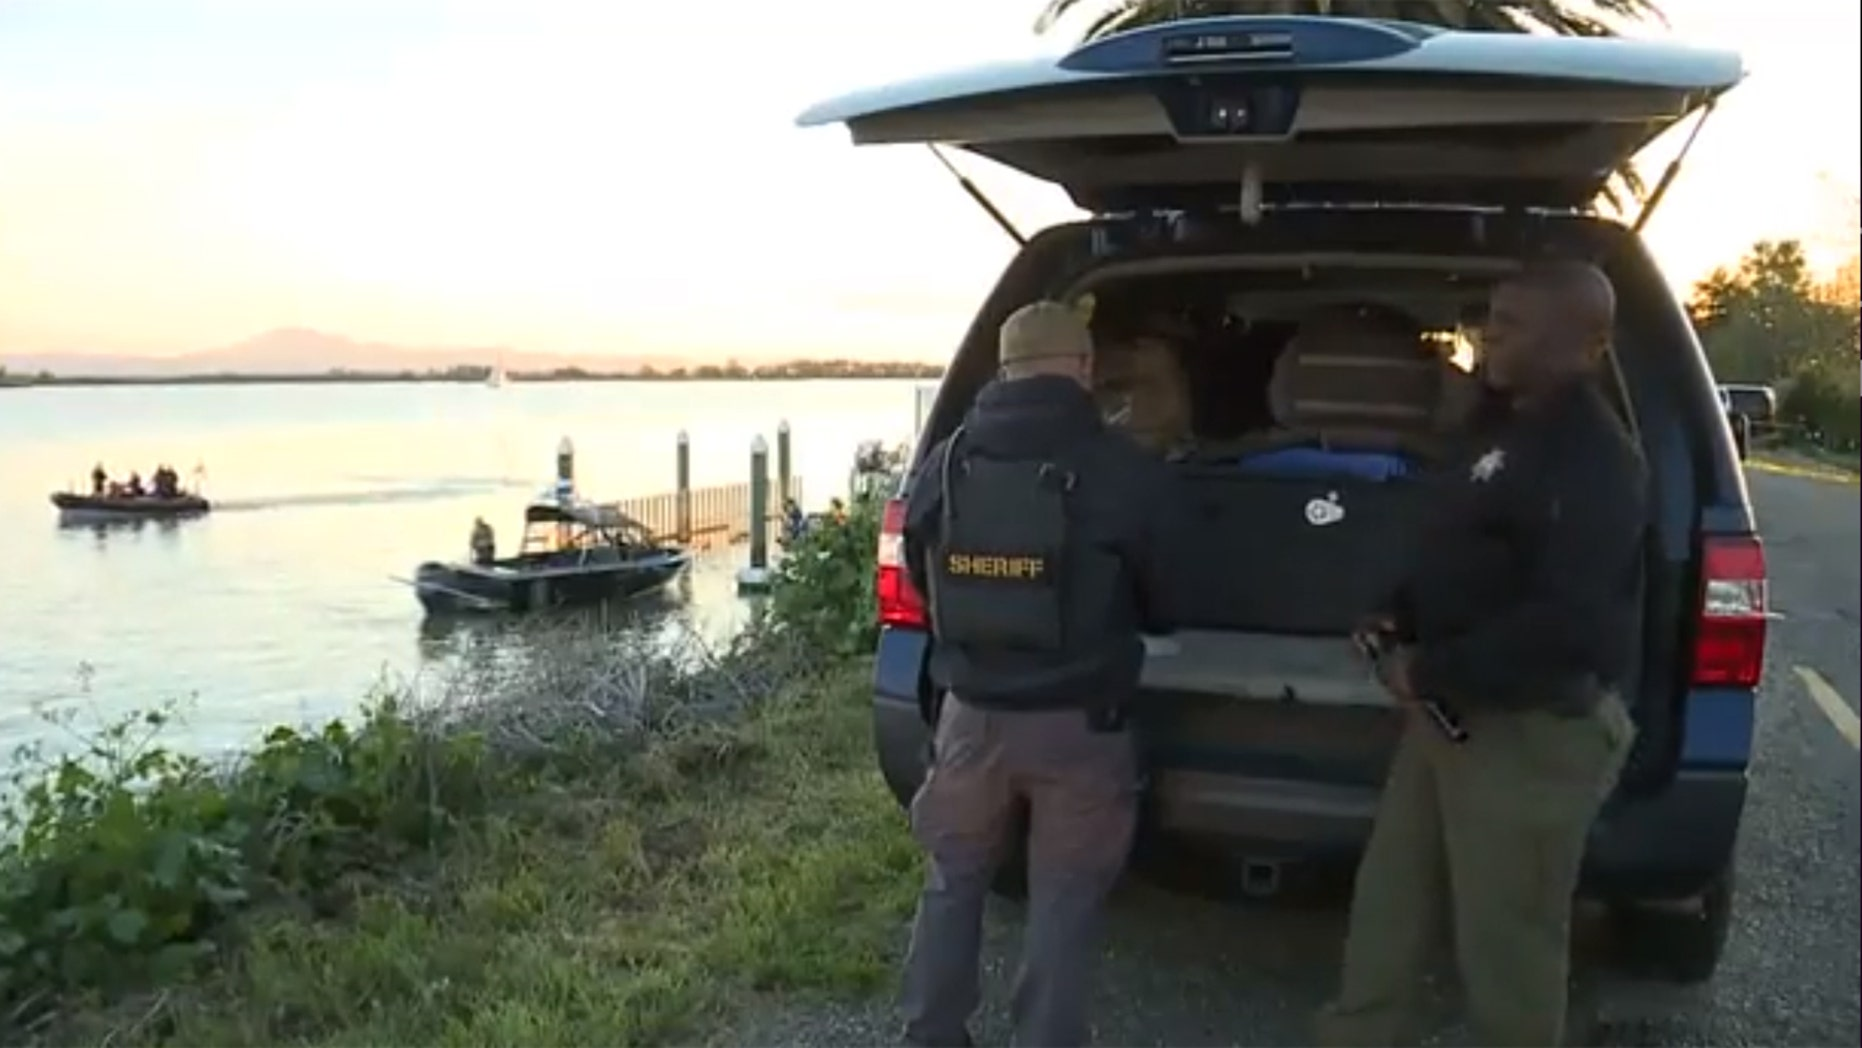 A father of 3 has been missing since Friday after a boating accident in Northern California.